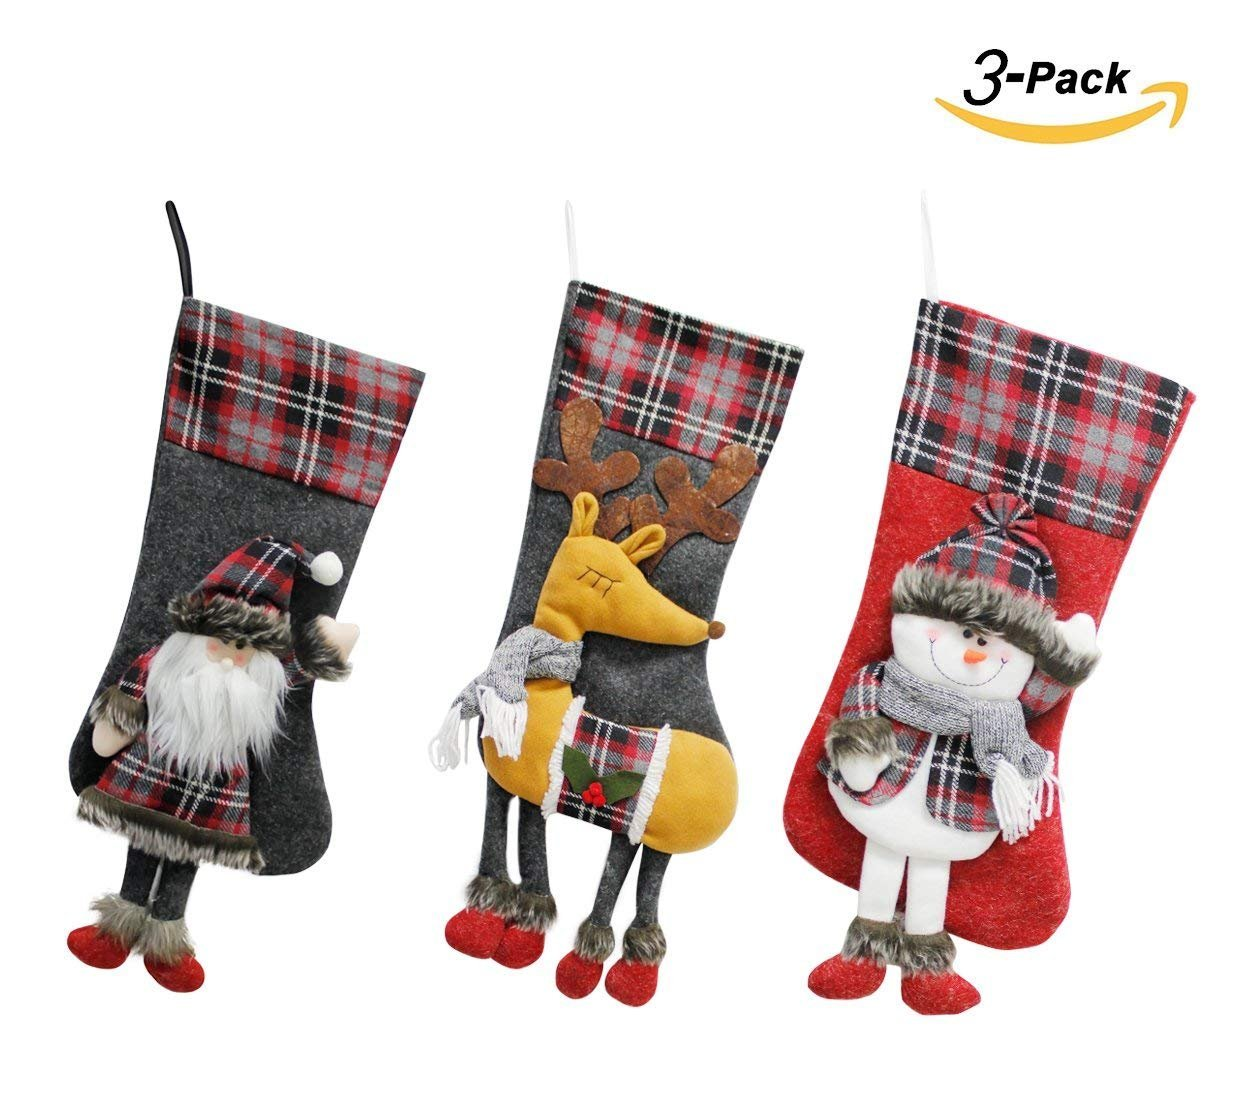 Scheppend 3D Design Christmas Hanging Stockings Set Holiday Decoration for Xmas Fireplace Ornament (Santa, Snowman and Reindeer)